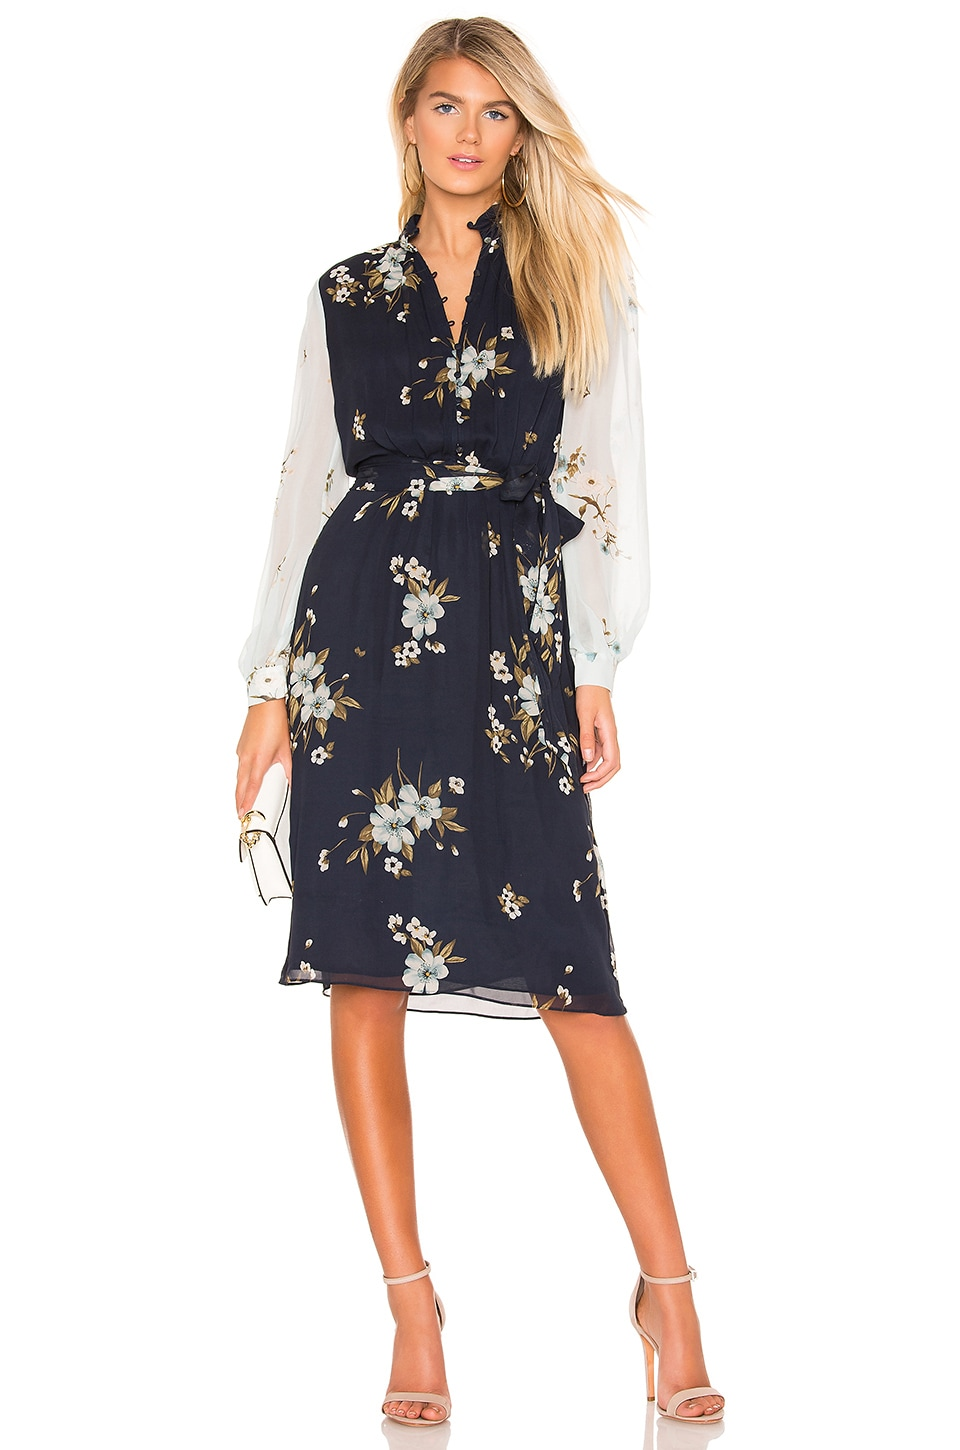 Joie Abbryana Dress in Cleadon